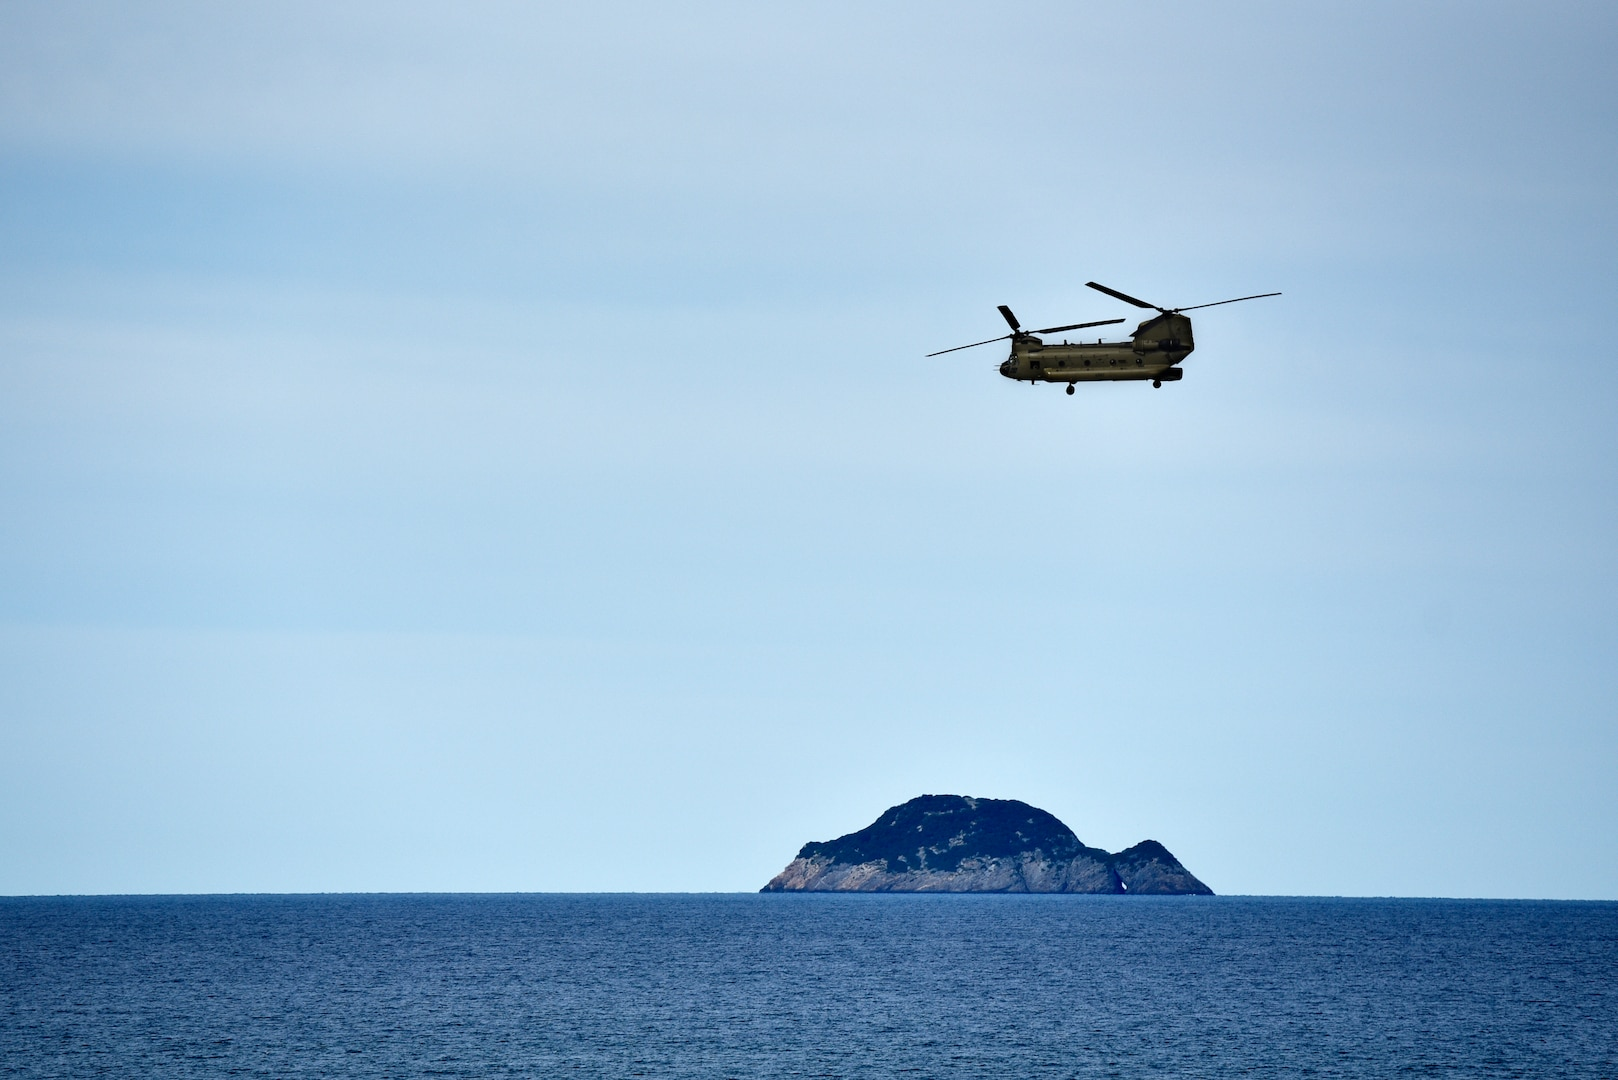 A CH-53 helicopter with the Australian Army brings role-players to the HMAS Canberra during Exercise Sea Raider at Sea June 17, 2018. The helicopters and soldiers were taking part in non-combatant evacuation operations as part of Ex Sea Series 18. The series is designed to train Australian Forces and get them amphibious ready. U.S. Marines and Sailors with Marine Rotational Force - Darwin 18 are working alongside the ADF as part of the Amphibious Task Group.